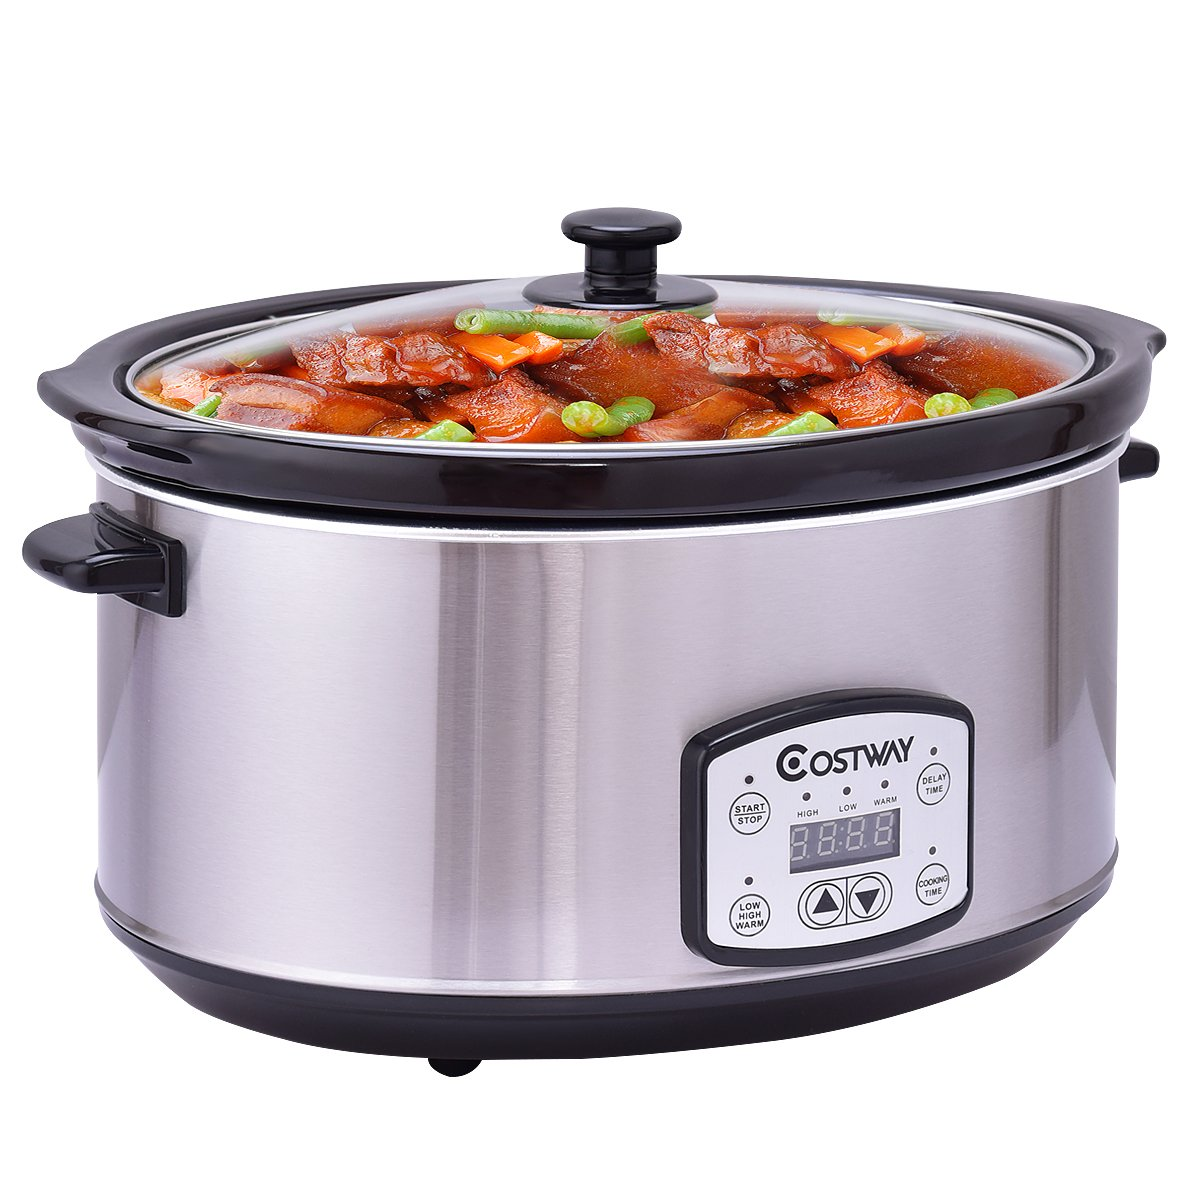 Costway 7 Quart Slow Cooker Programmable Oval Stainless Steel Slow Cooker w/Digital Timer